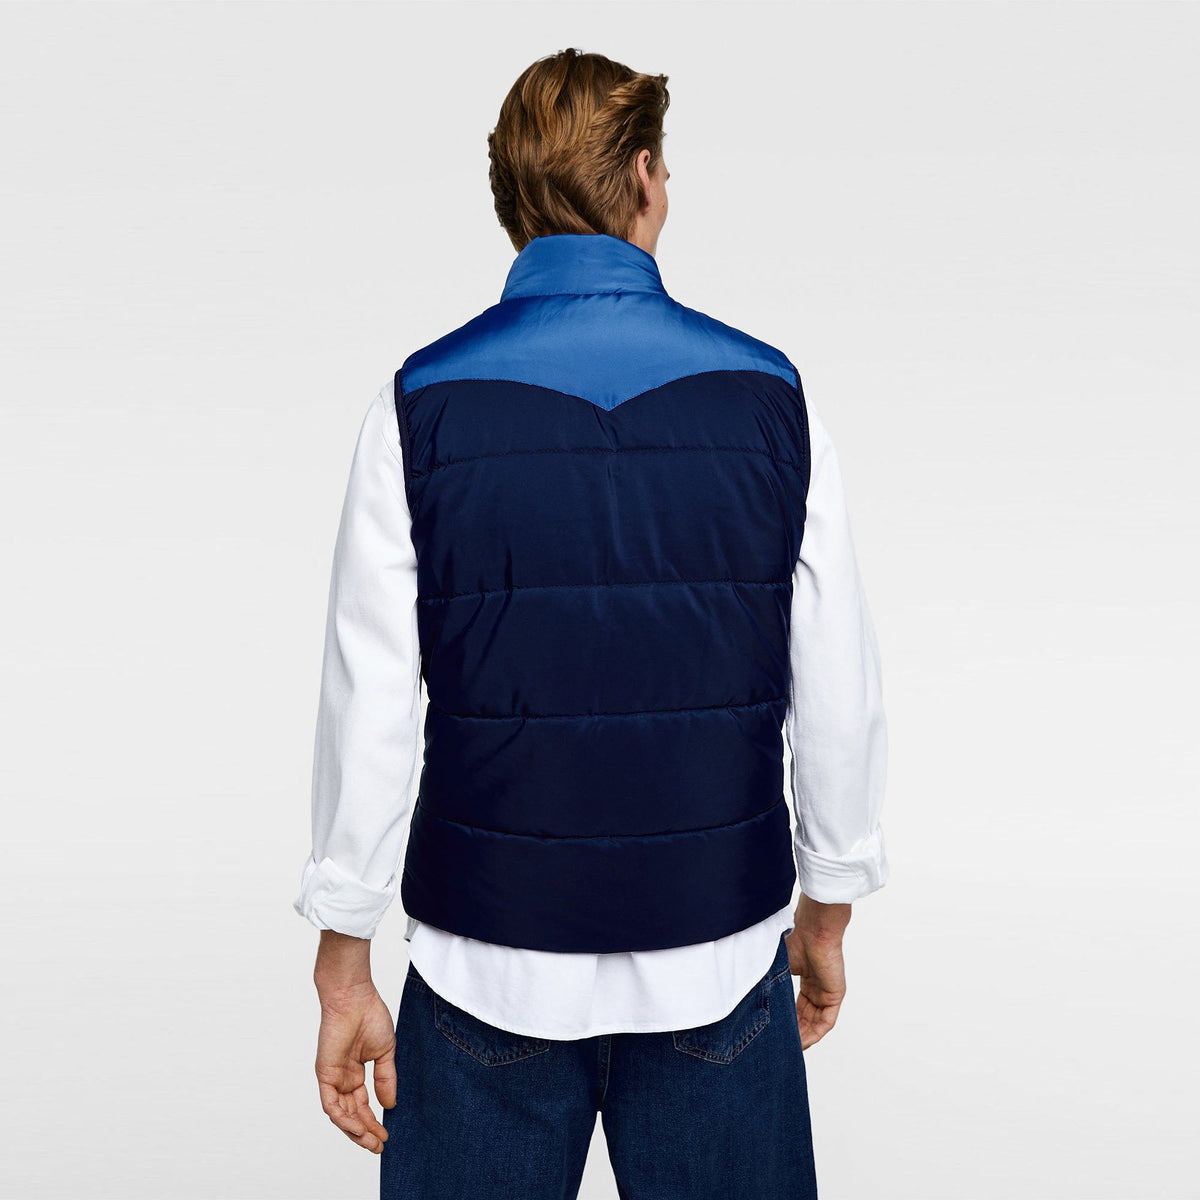 ZR-exclusive navy blue padded gilet